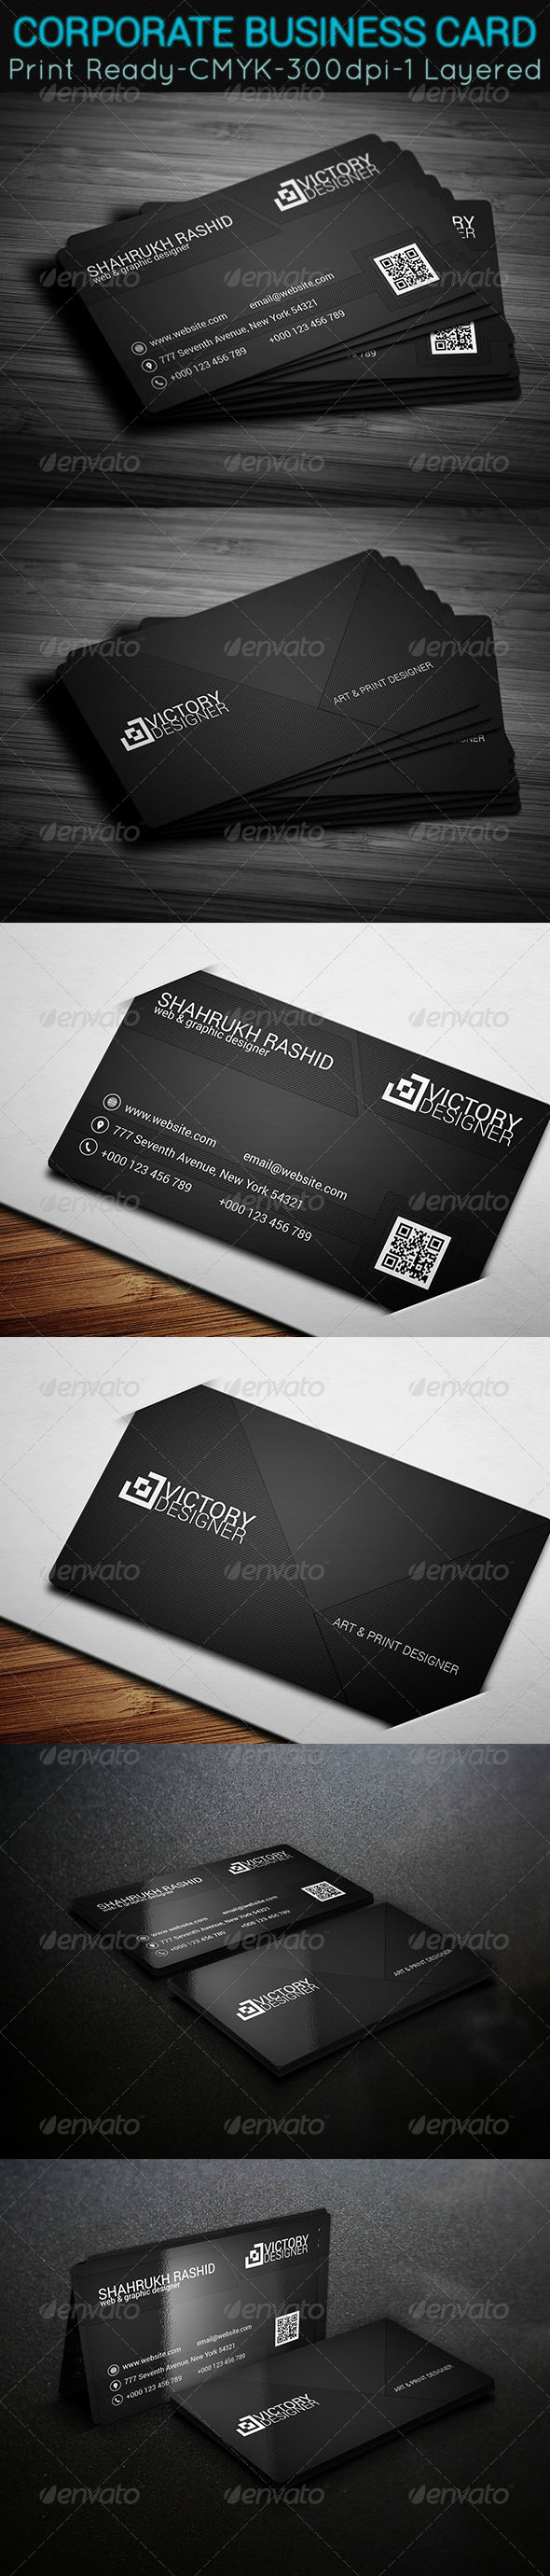 GraphicRiver Corporate Business Card 7772500